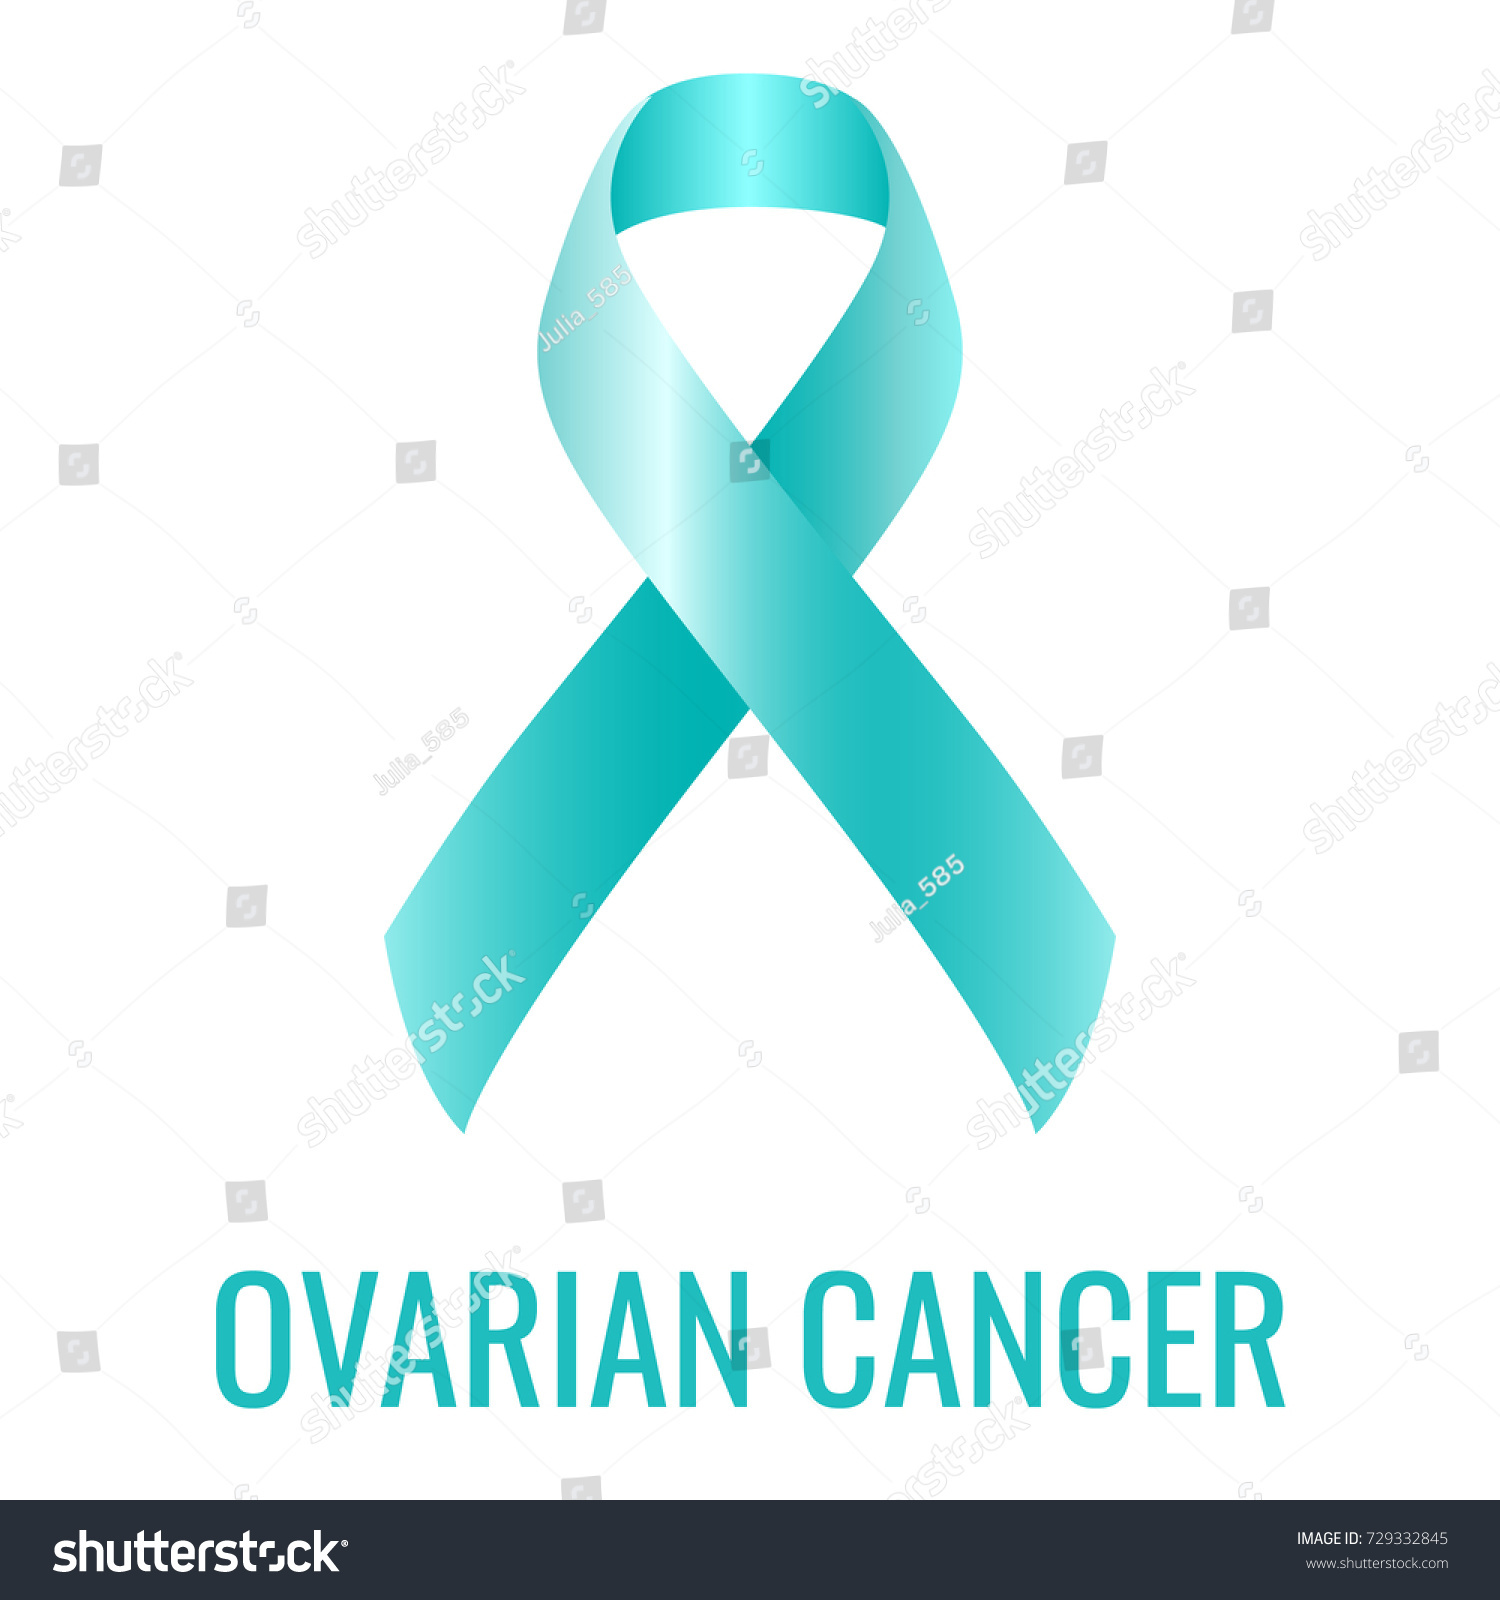 List Of Synonyms And Antonyms Of The Word Ovarian Cancer Ribbon